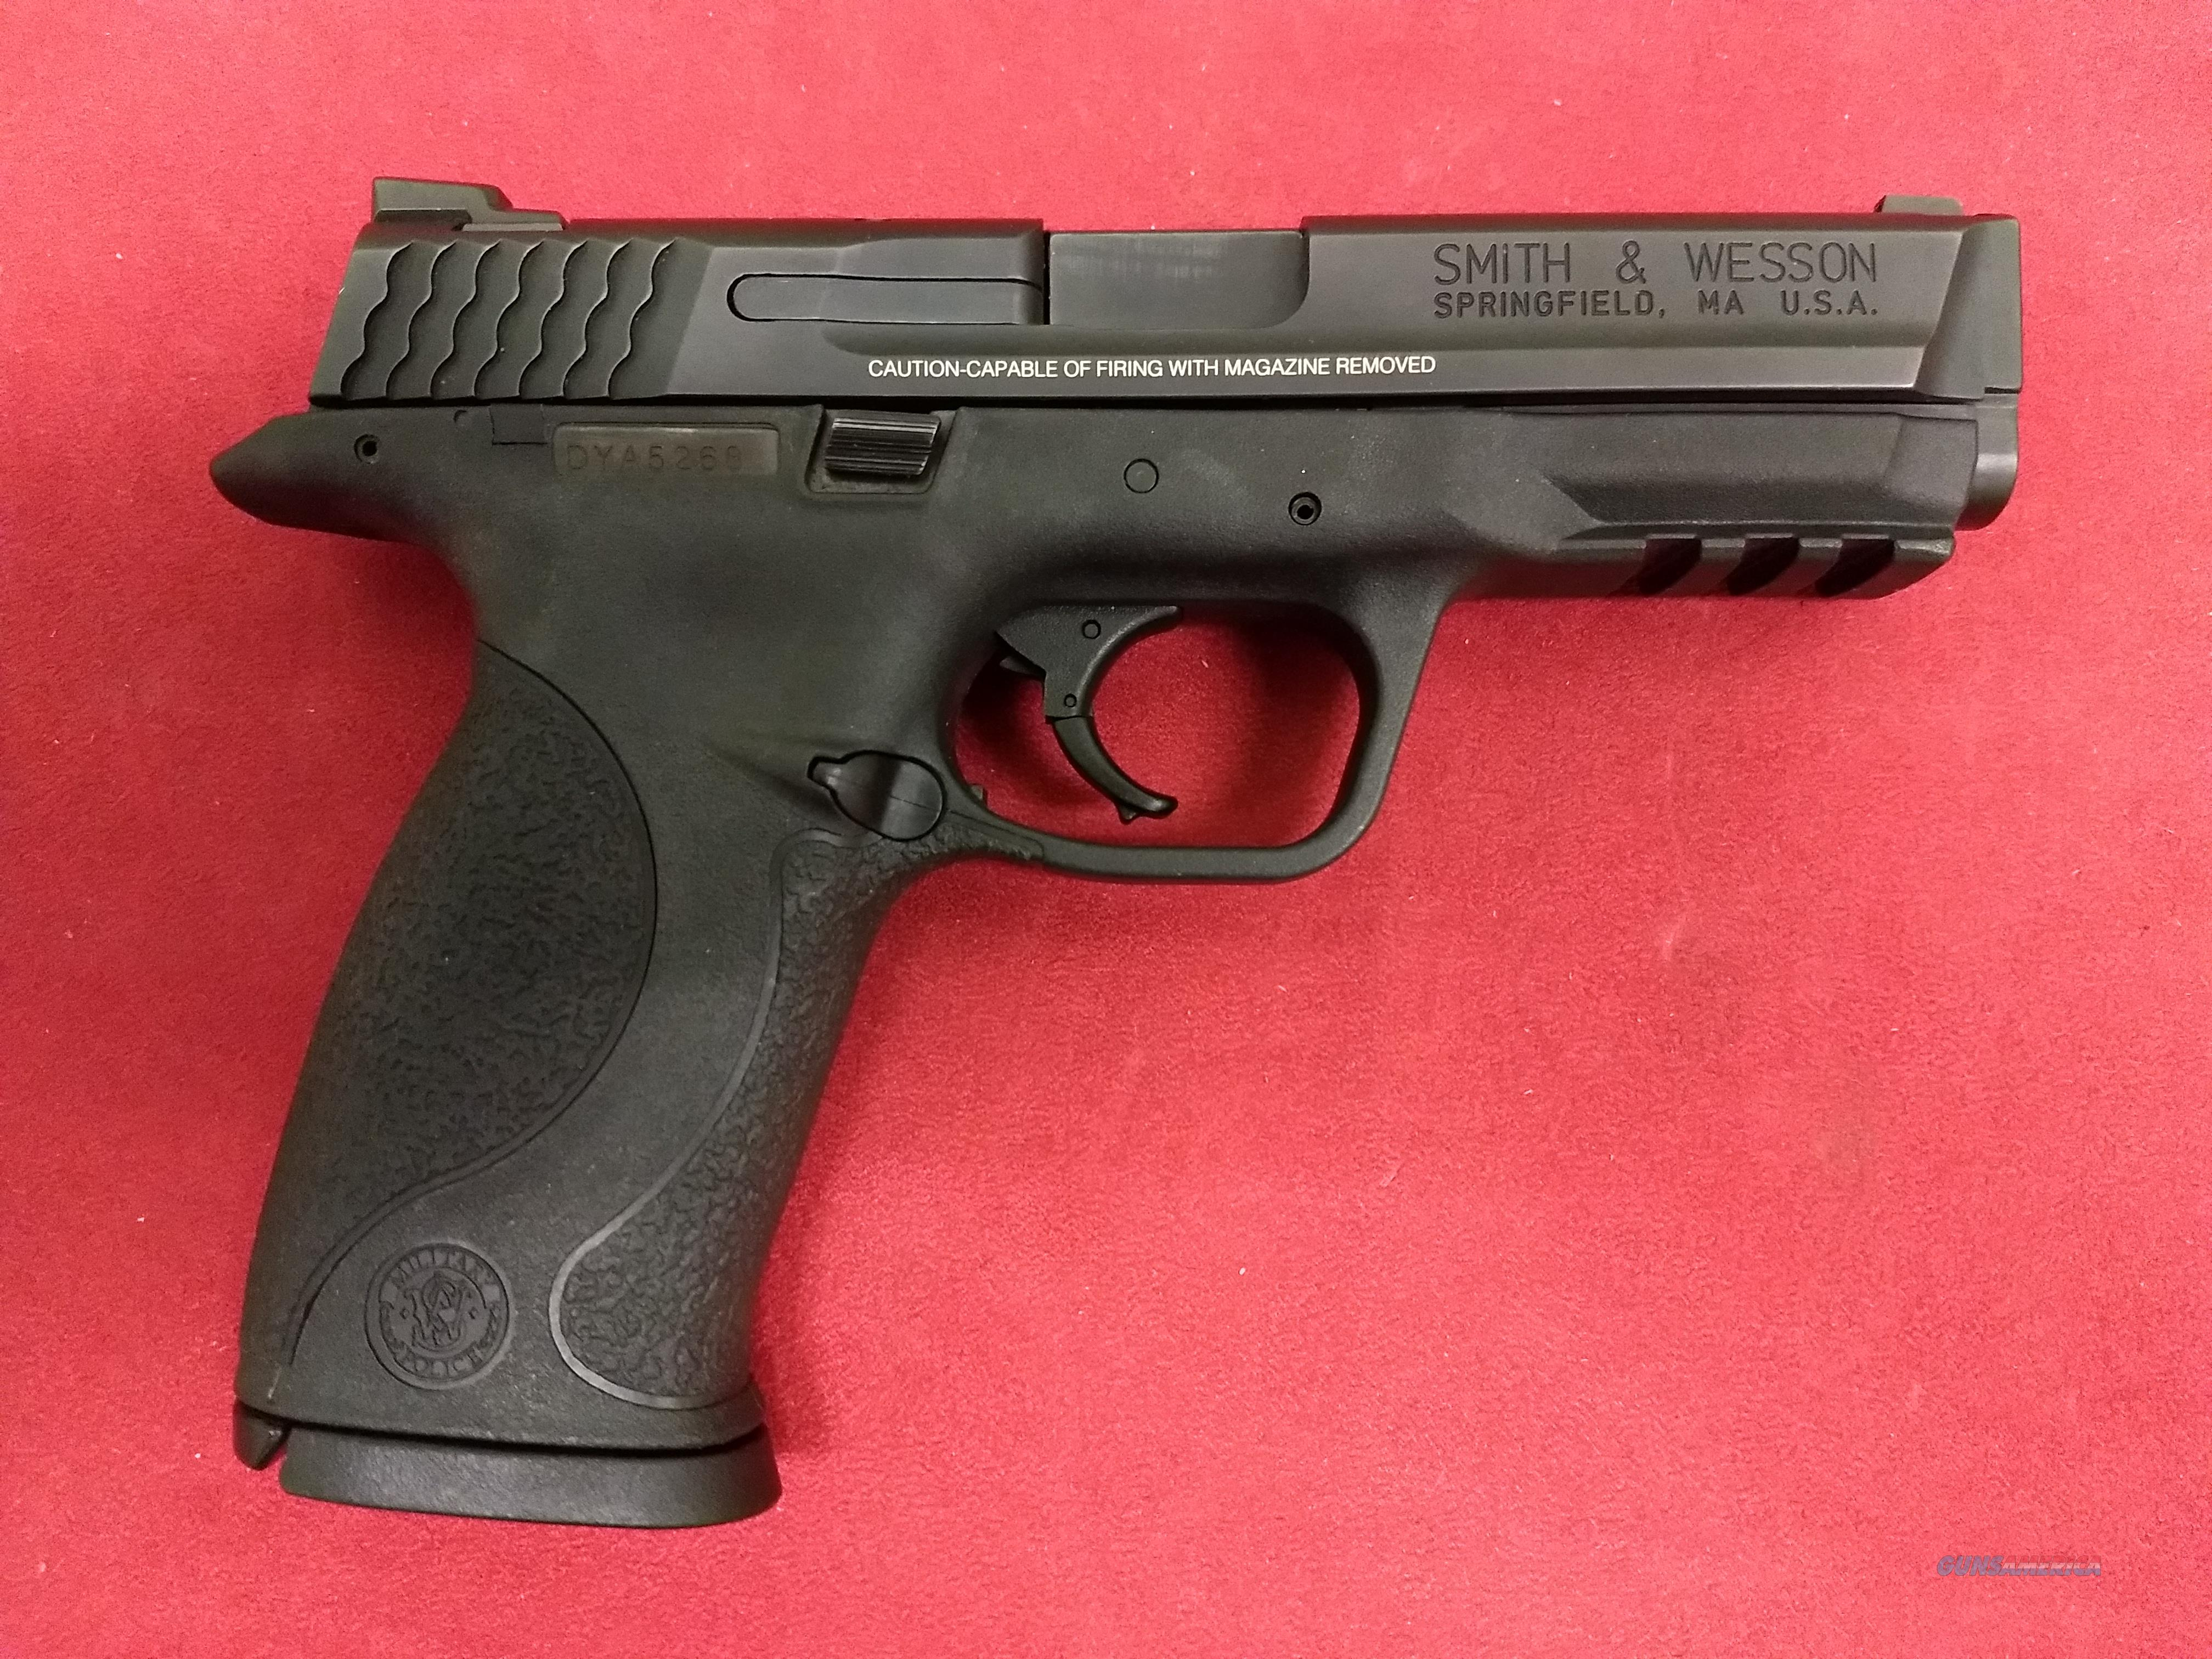 S&W M&P9 Pistol, 9mm, Like New!  Guns > Pistols > Smith & Wesson Pistols - Autos > Polymer Frame